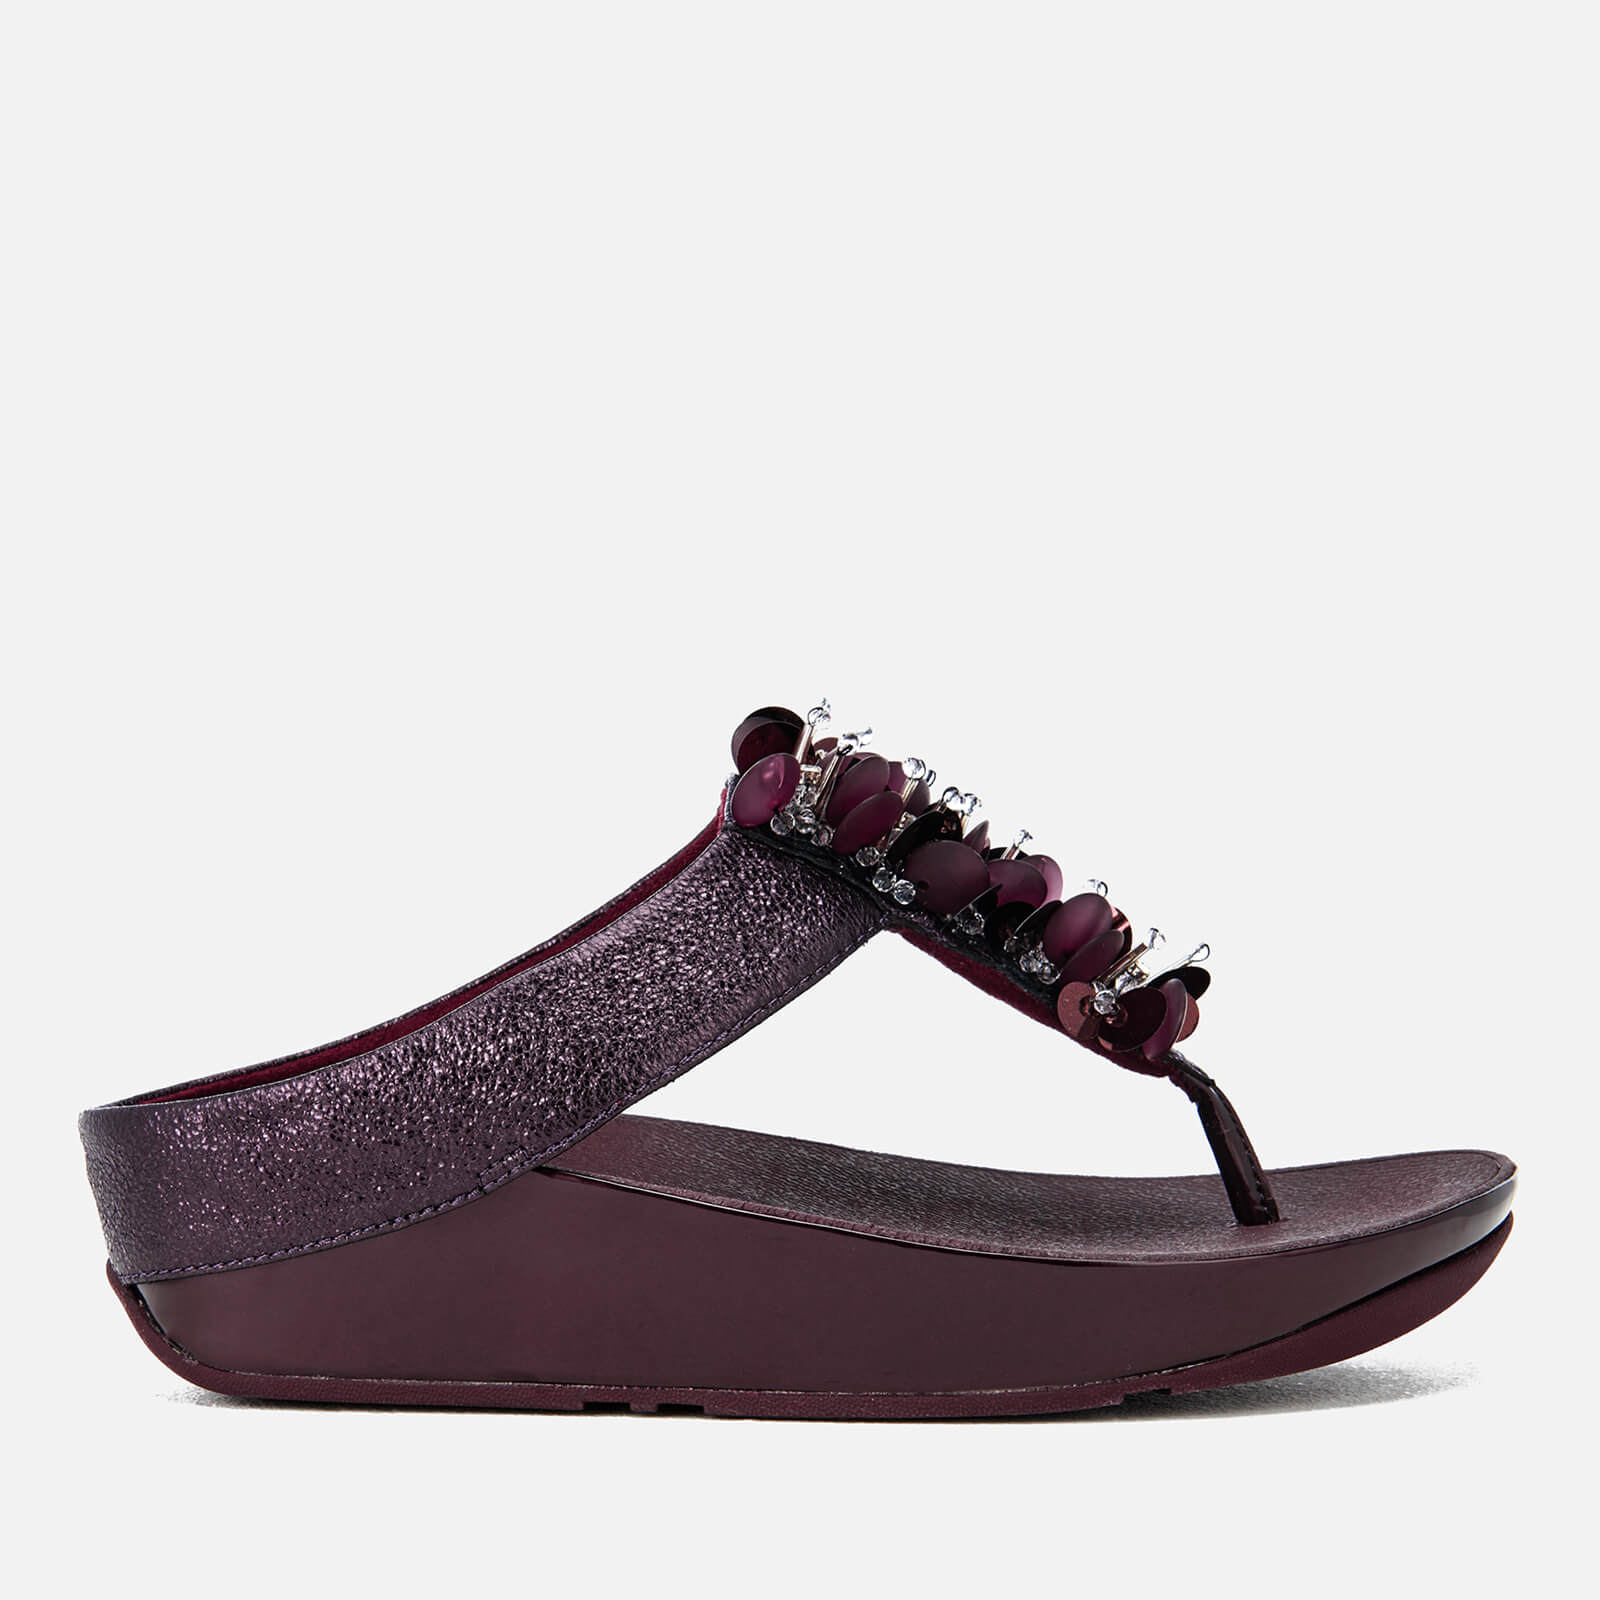 daa776411 FitFlop Women s Boogaloo Toe-Post Sandals - Deep Plum Womens Footwear